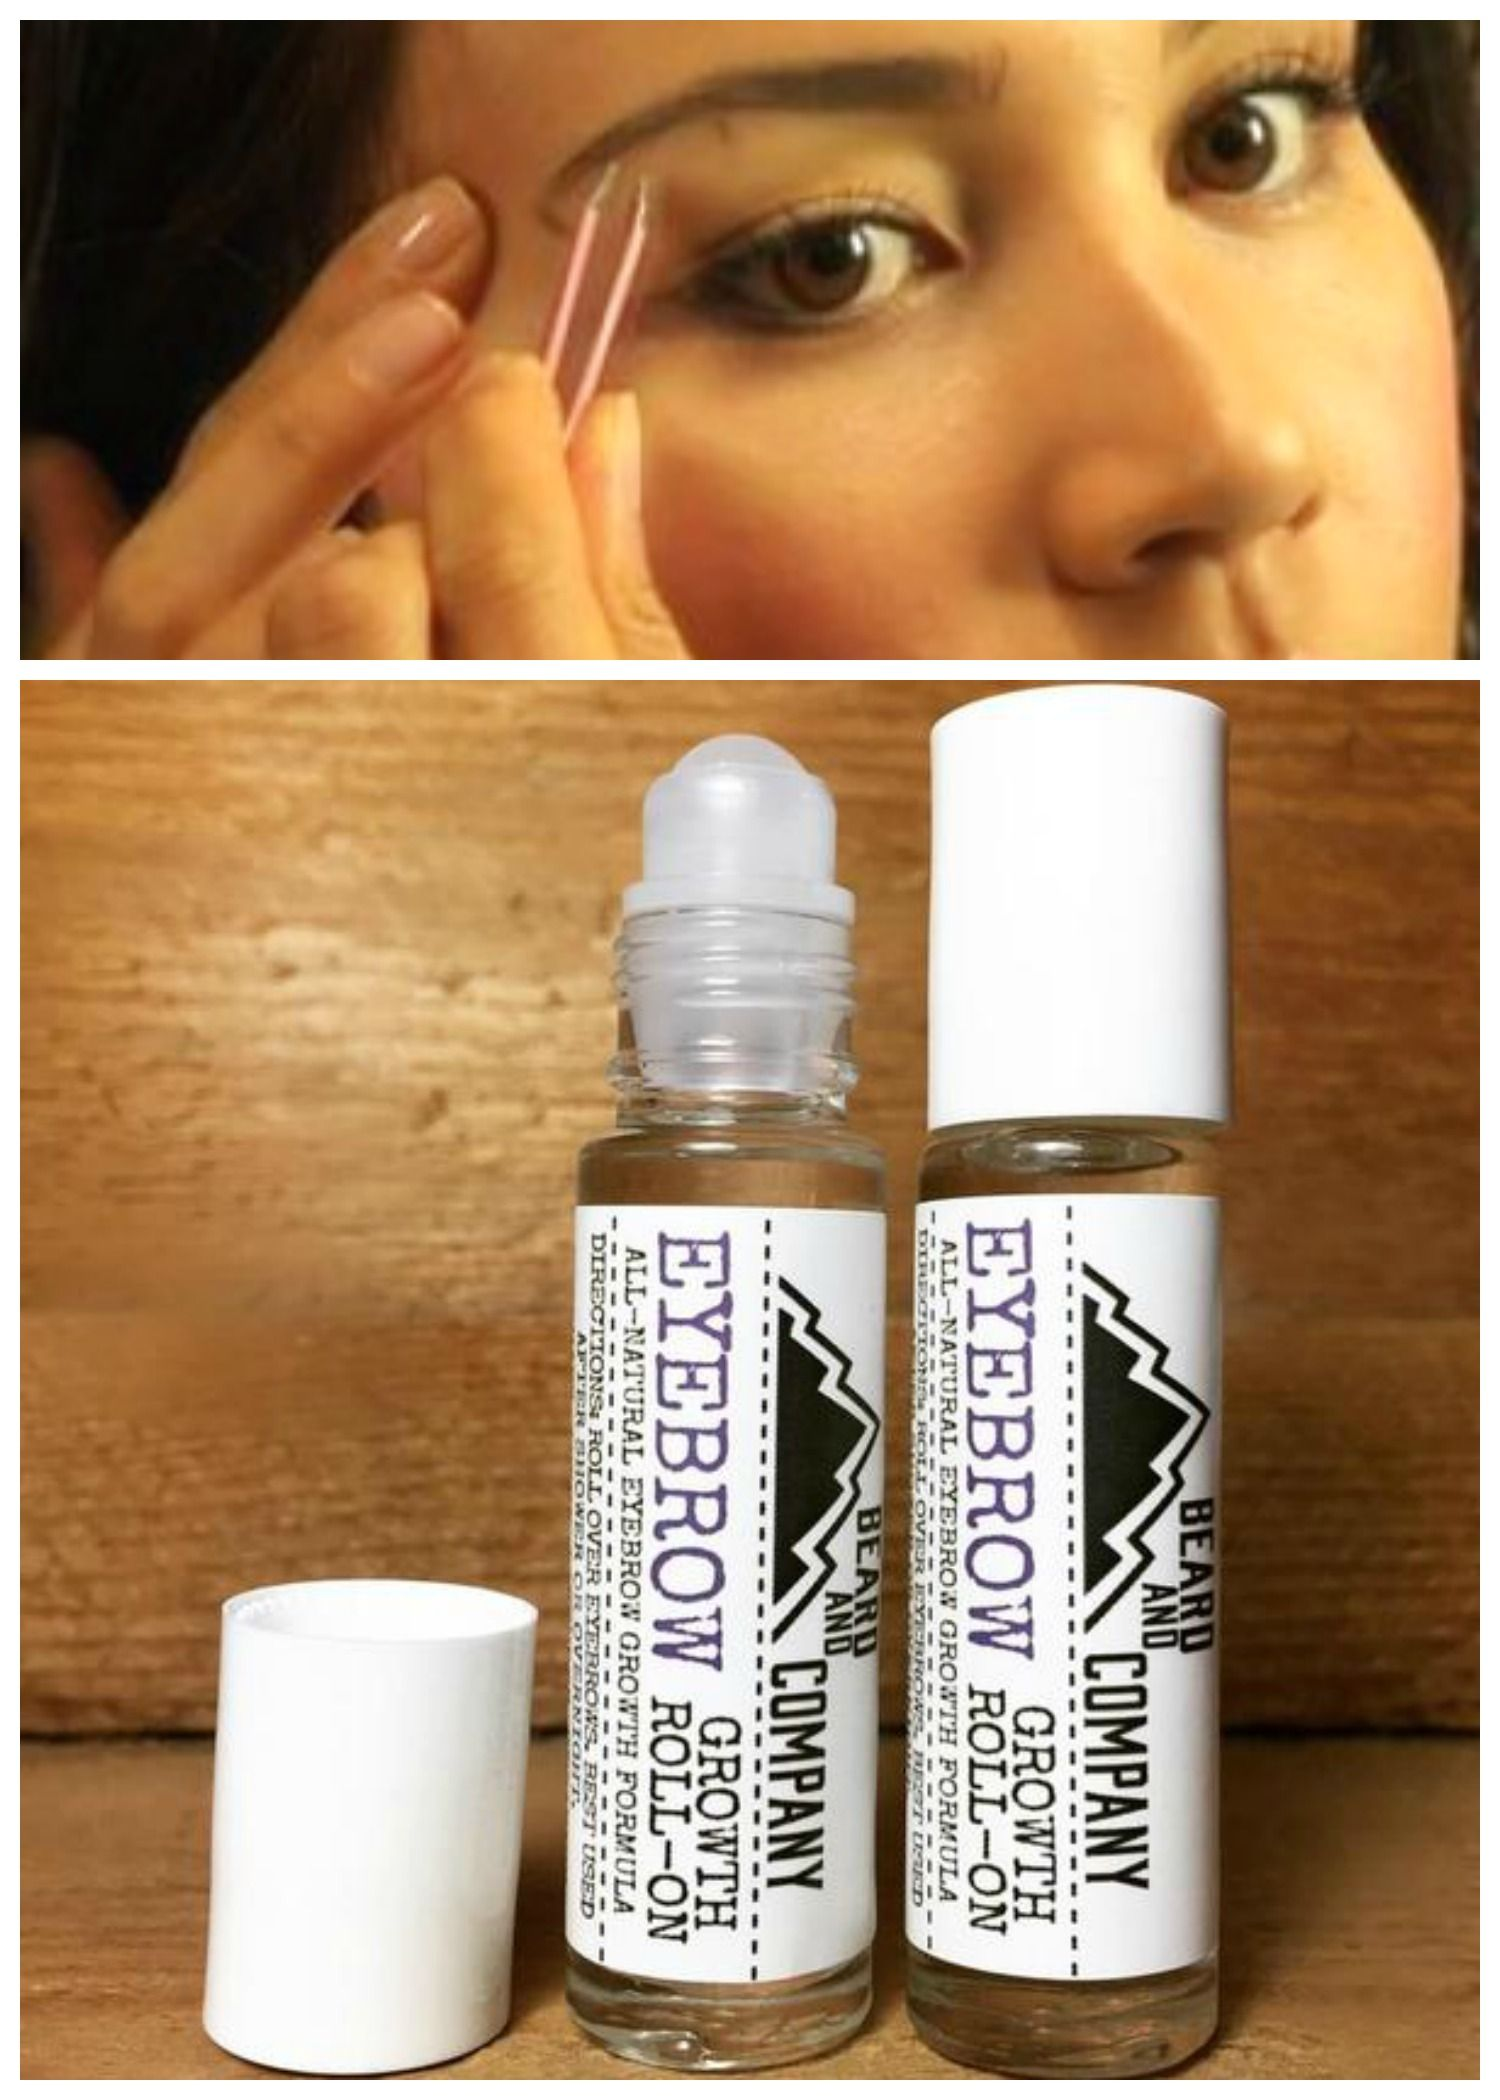 0773725553e Regrow your thin, over plucked, or over trimmed eyebrows with Beard and Company's  all-natural Eyebrow Growth Serum. Made in Colorado.